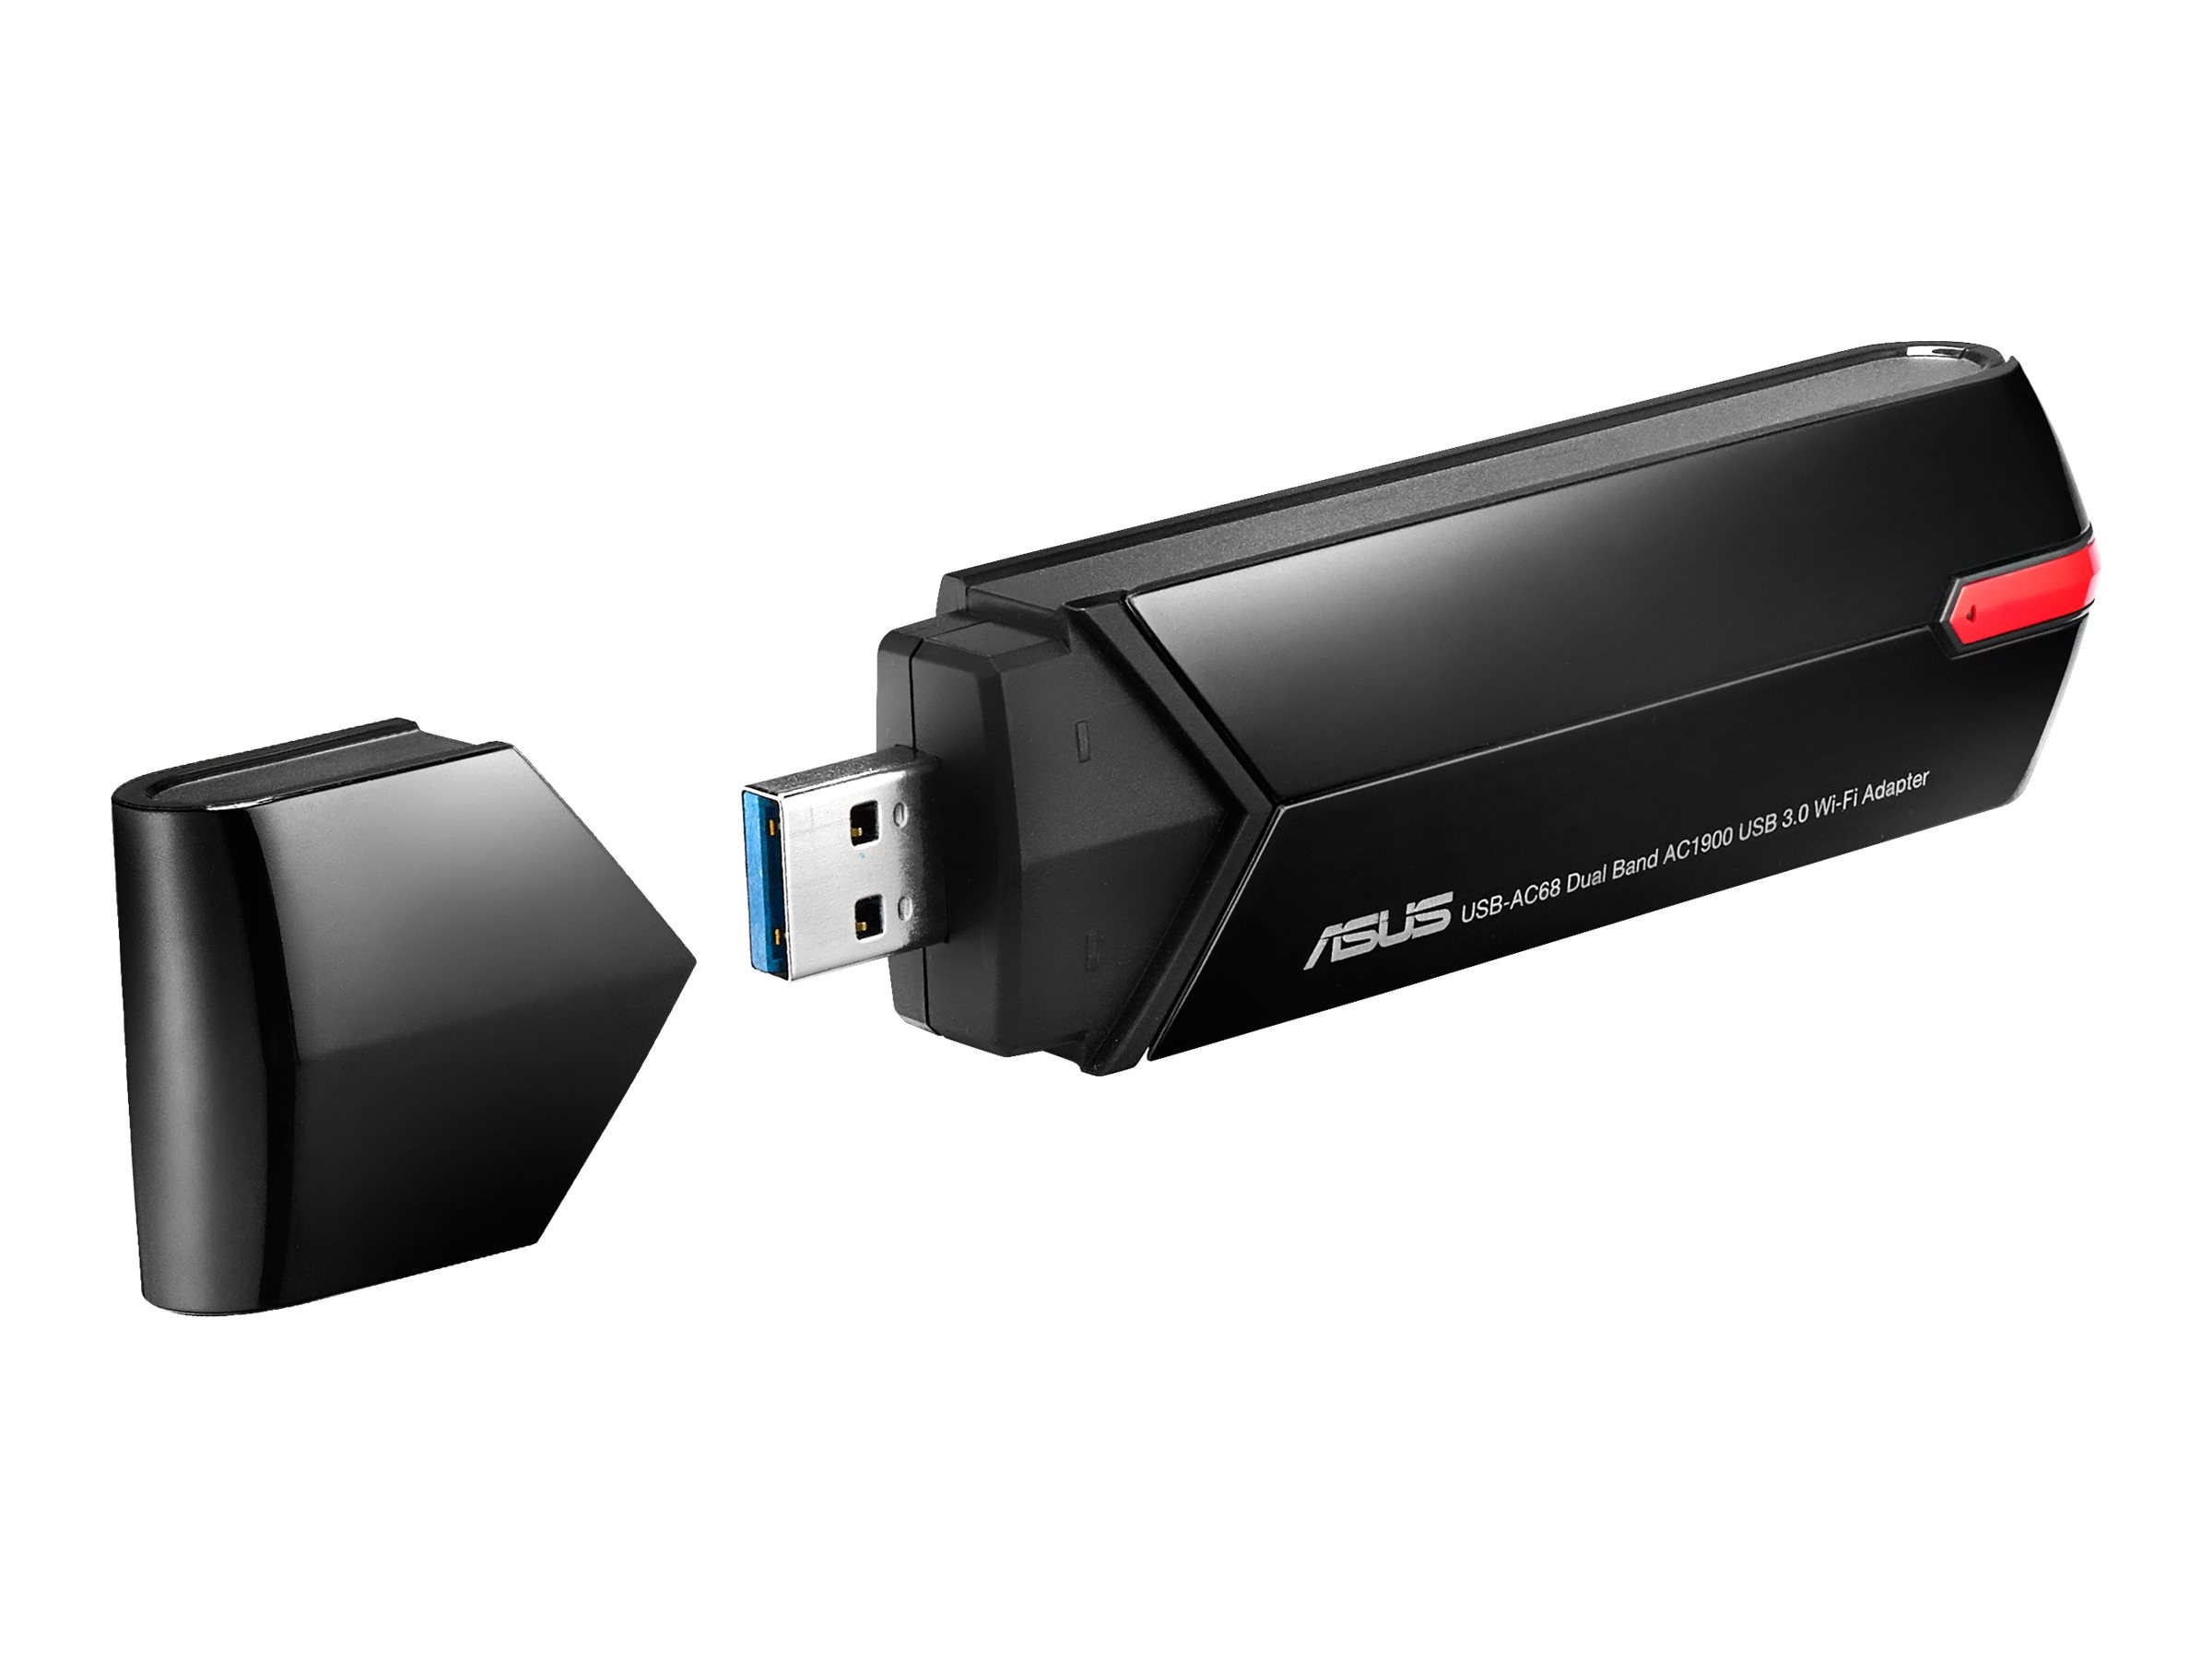 Asus Dual-Band AC1900 USB Wi-Fi Adapter, USB-AC68